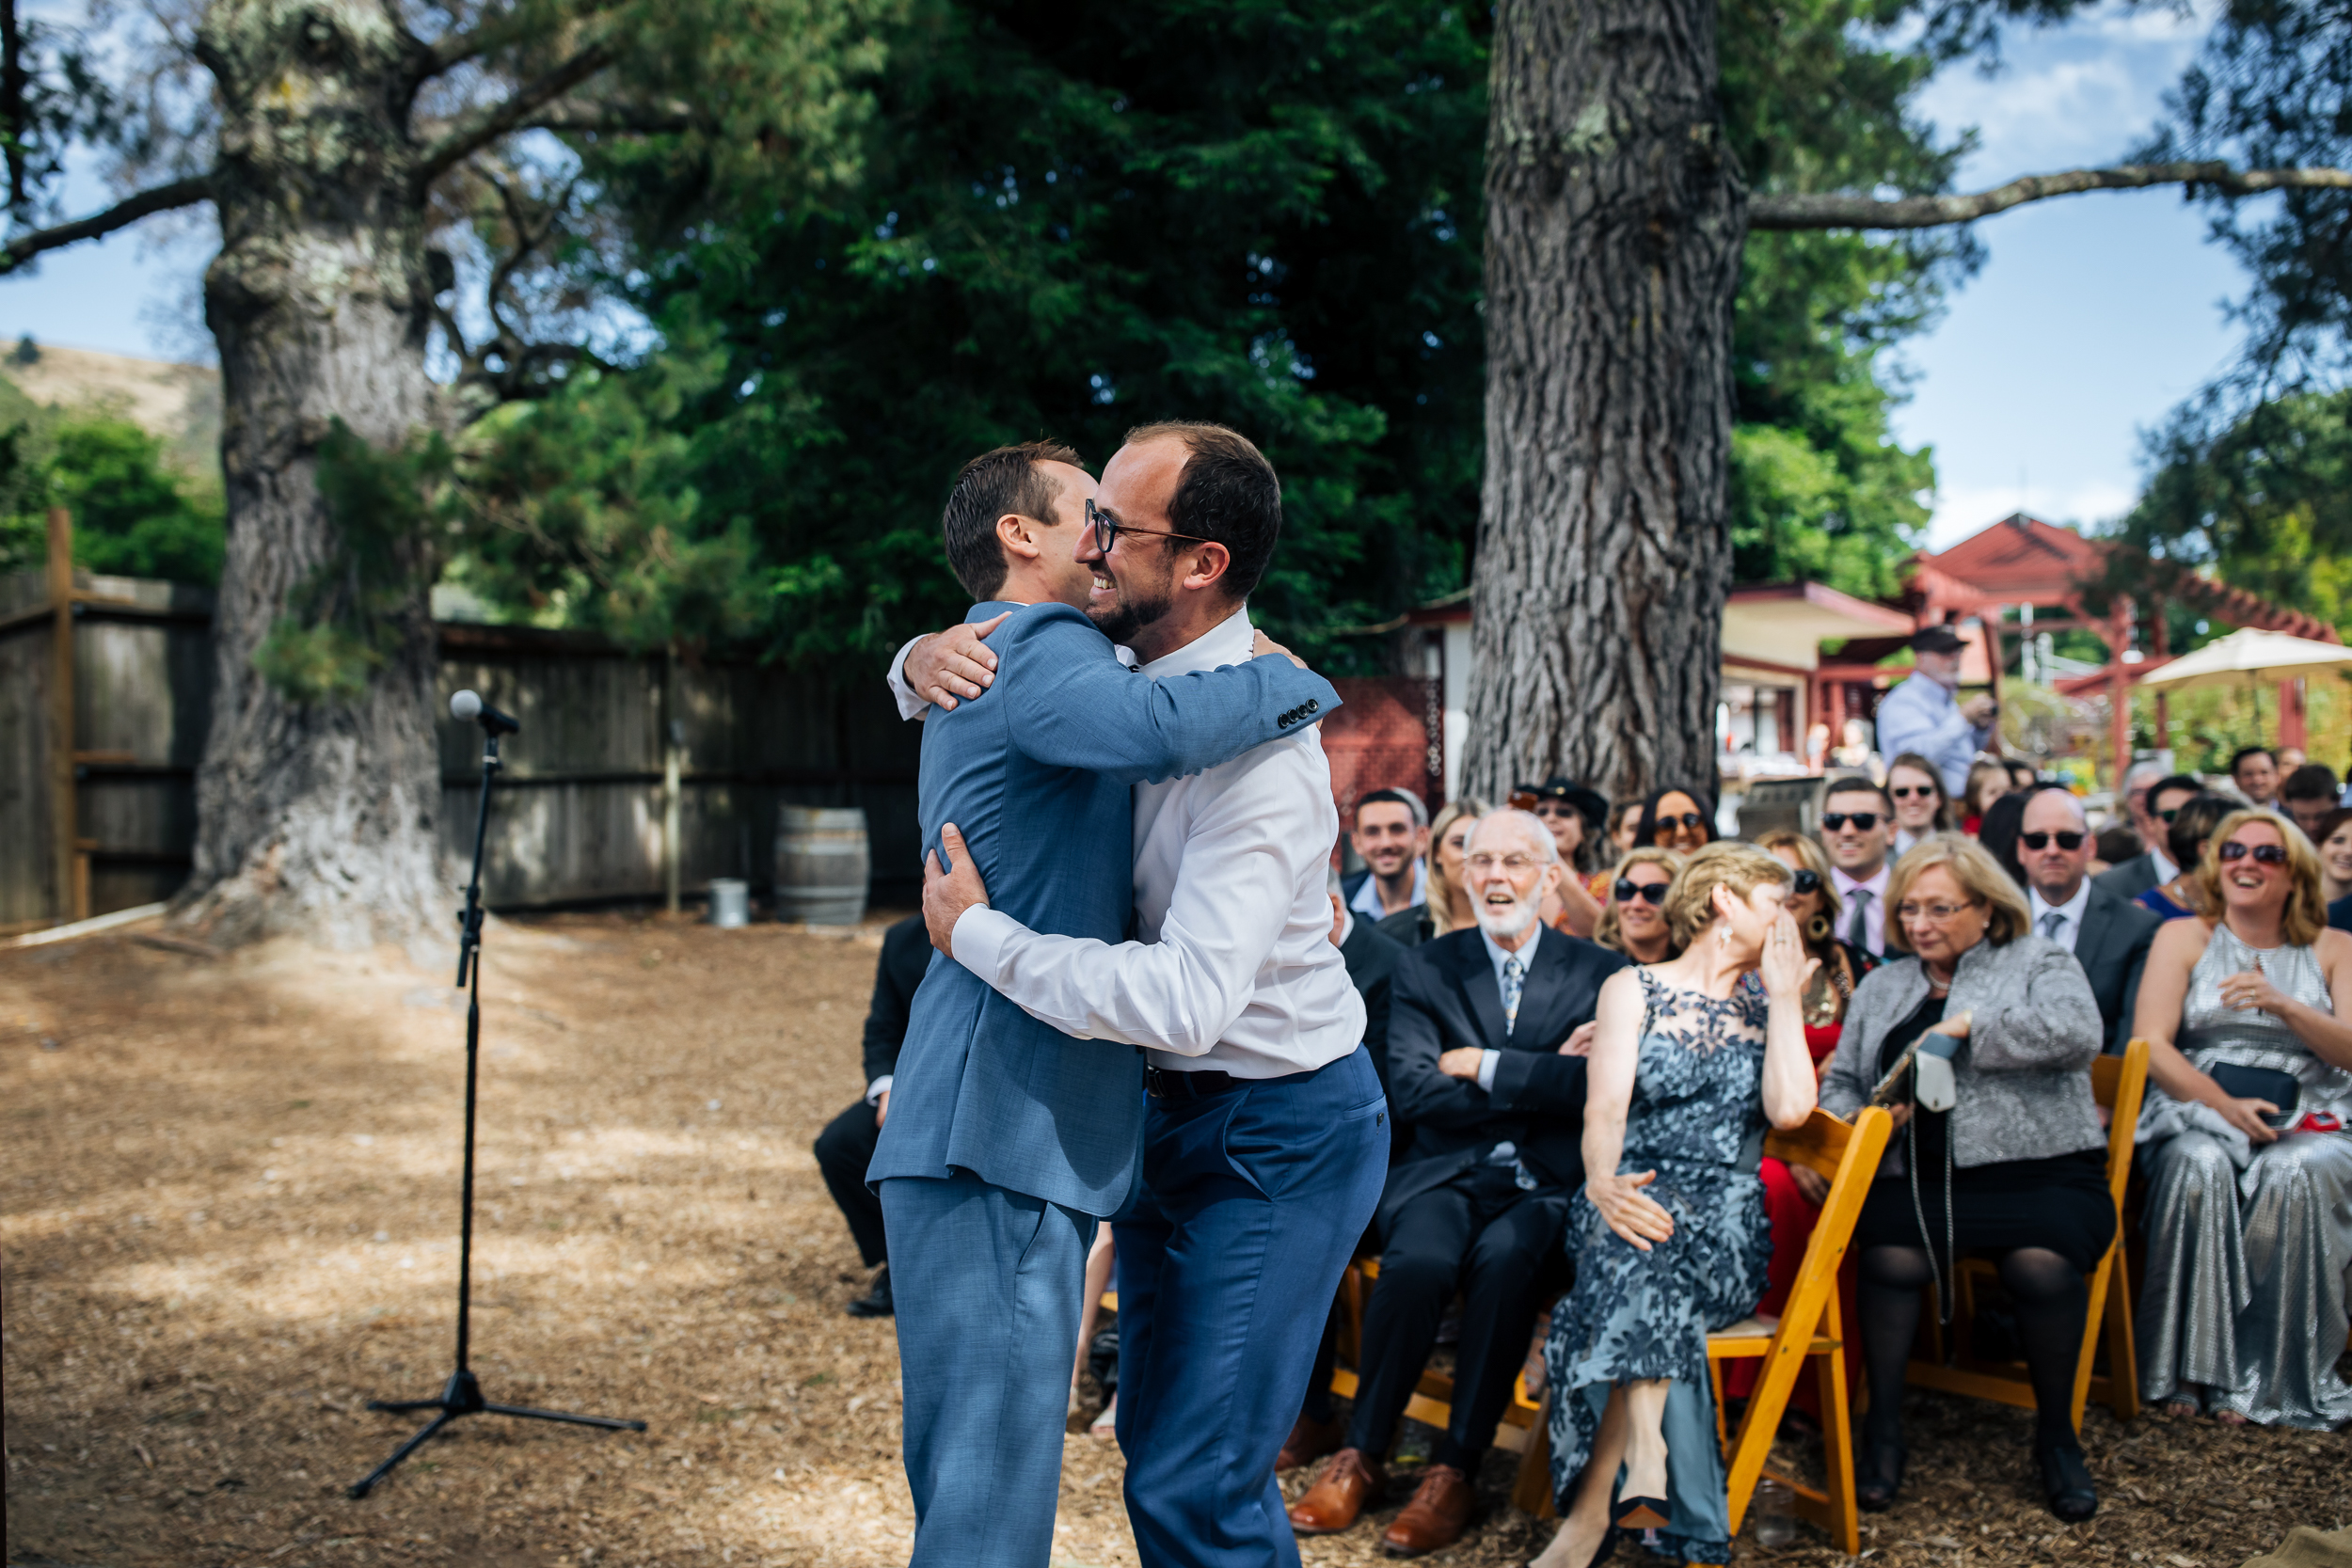 Rancho Nicasio Wedding 2018-146.jpg